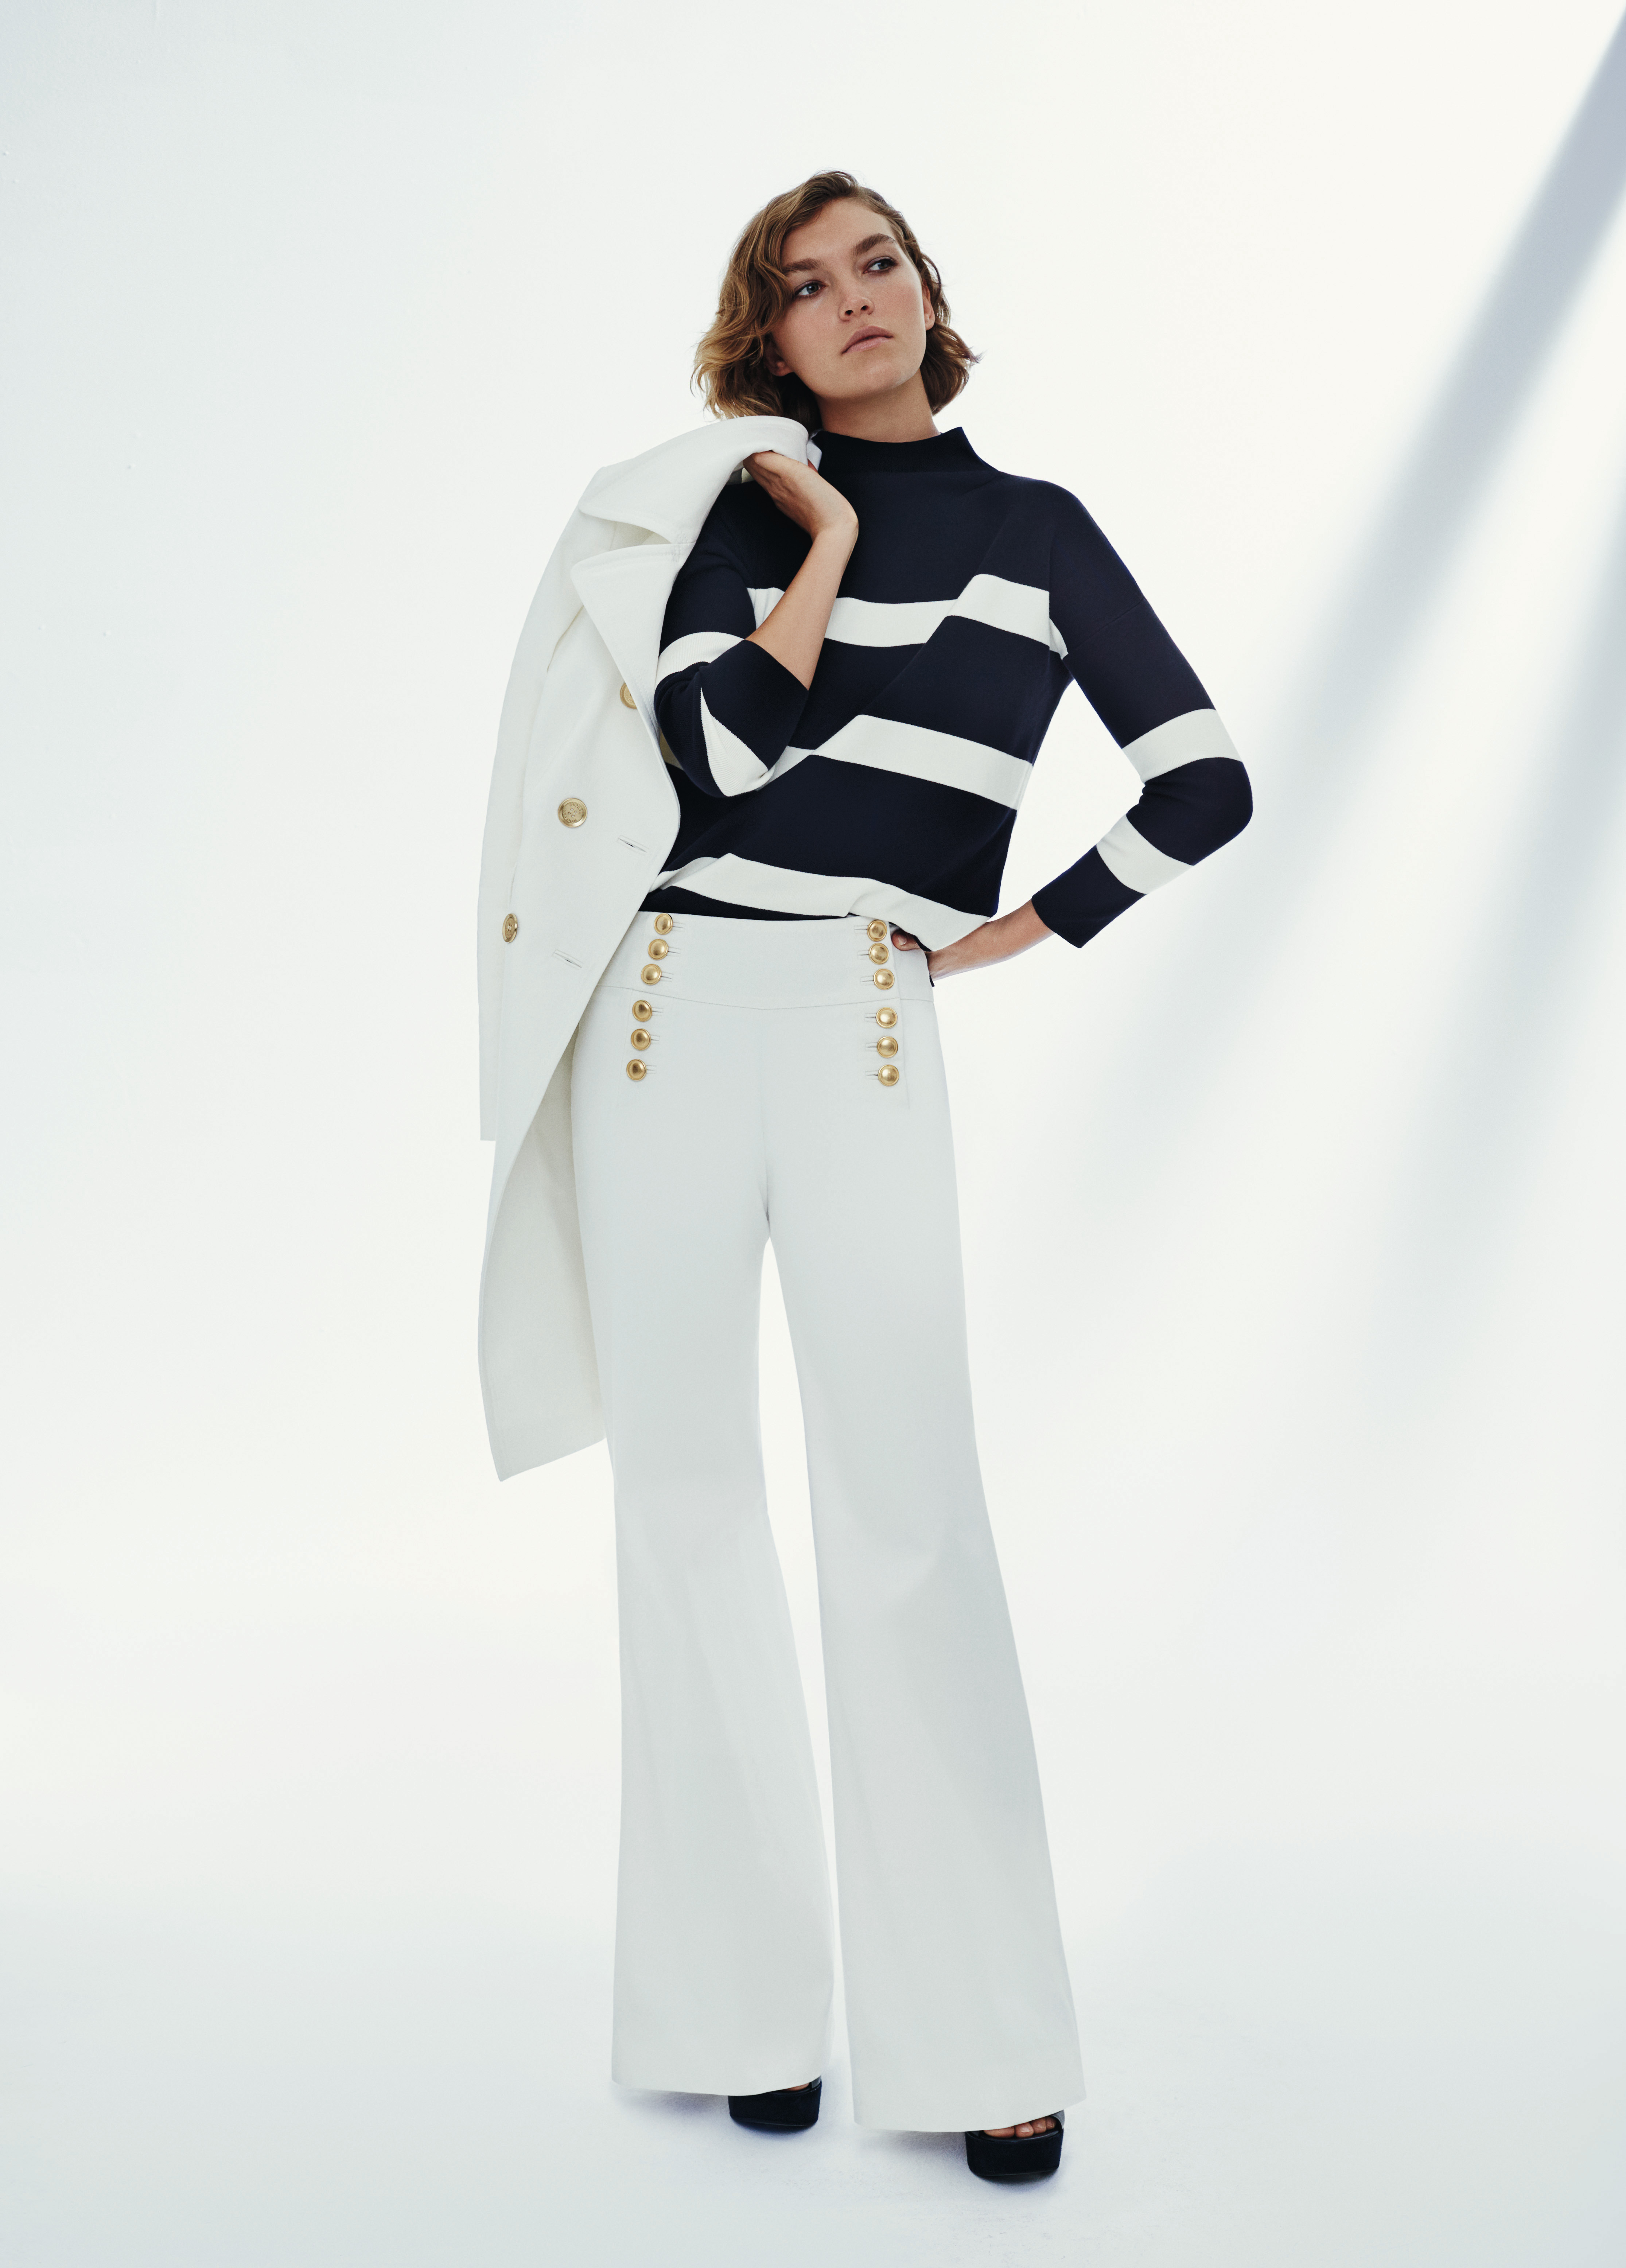 hobbs_sailor trousers and stripes